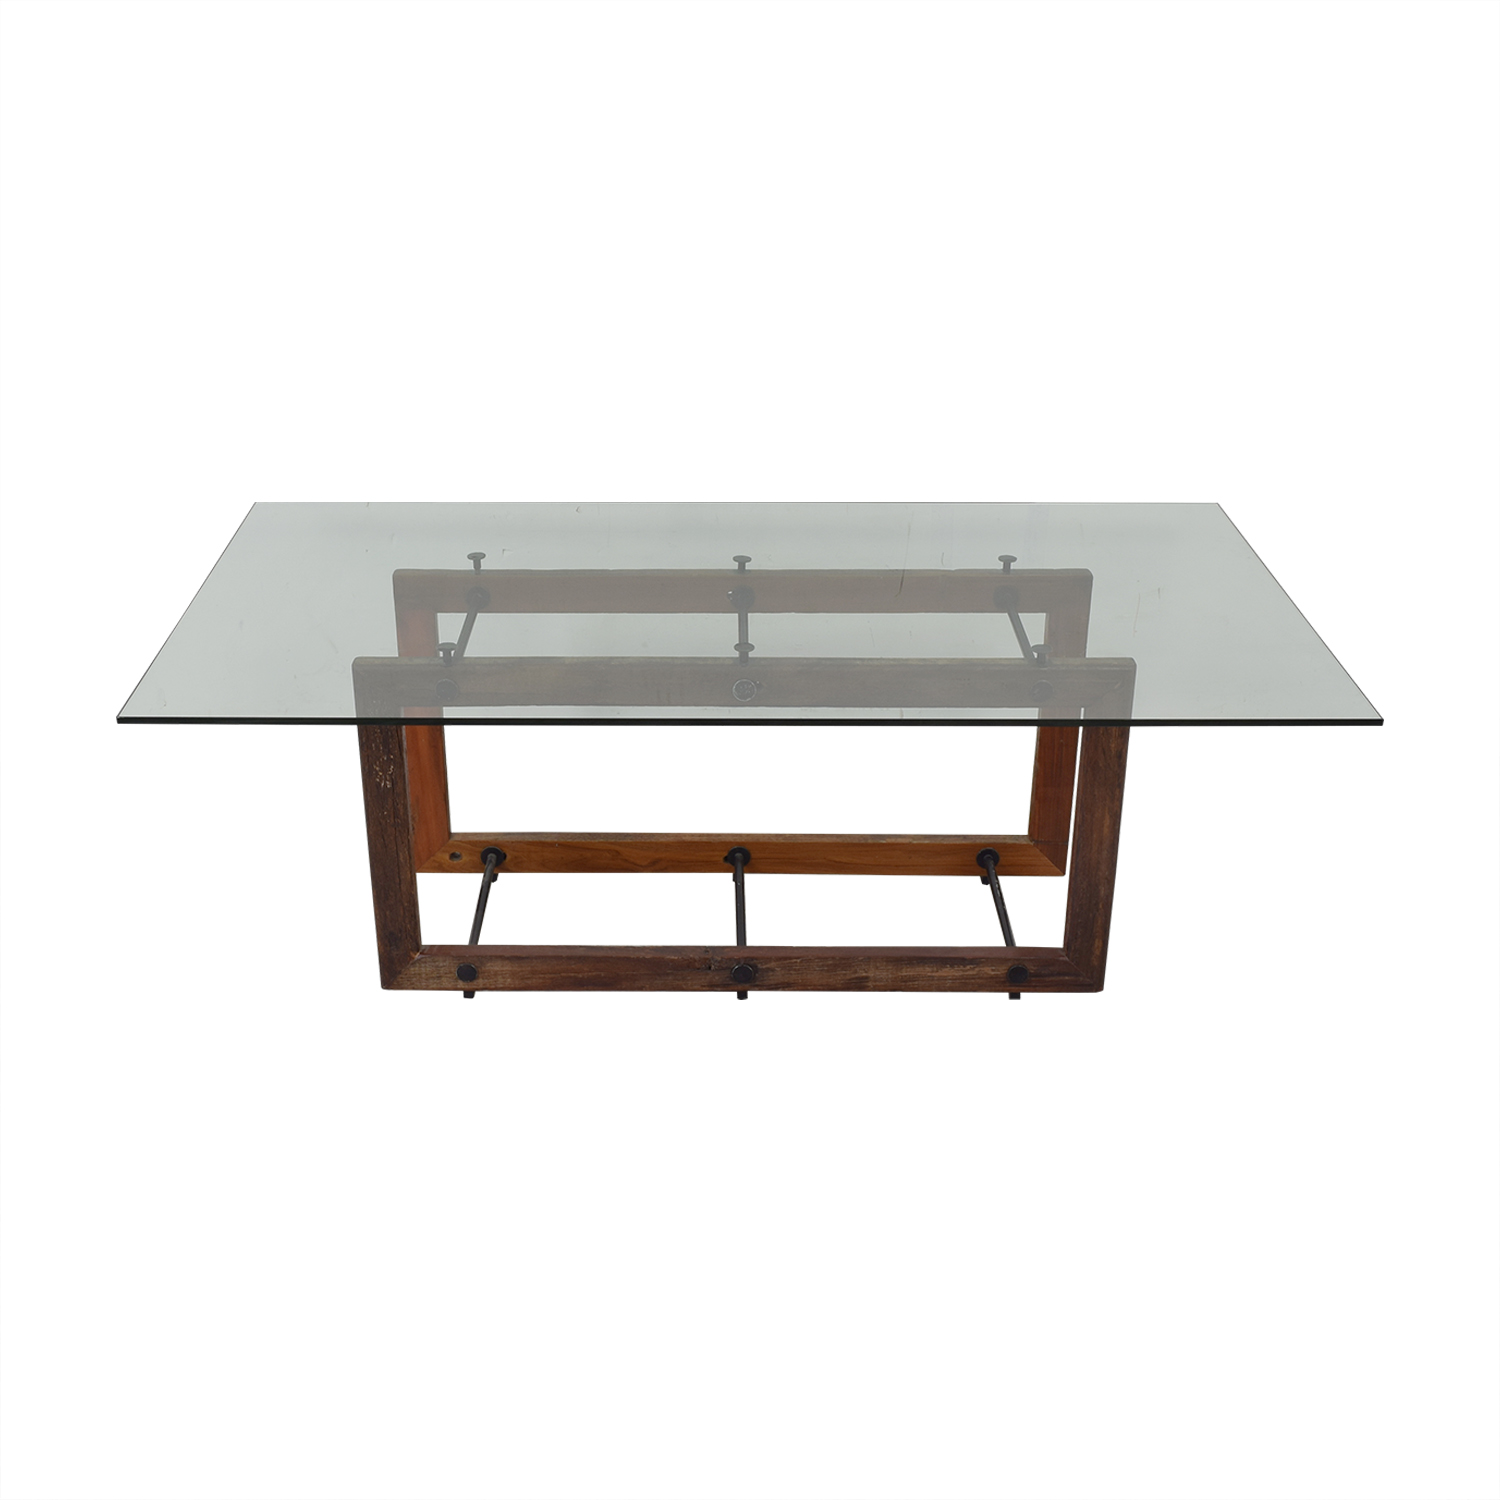 ABC Carpet & Home ABC Carpet & Home Glass Dining Table dimensions